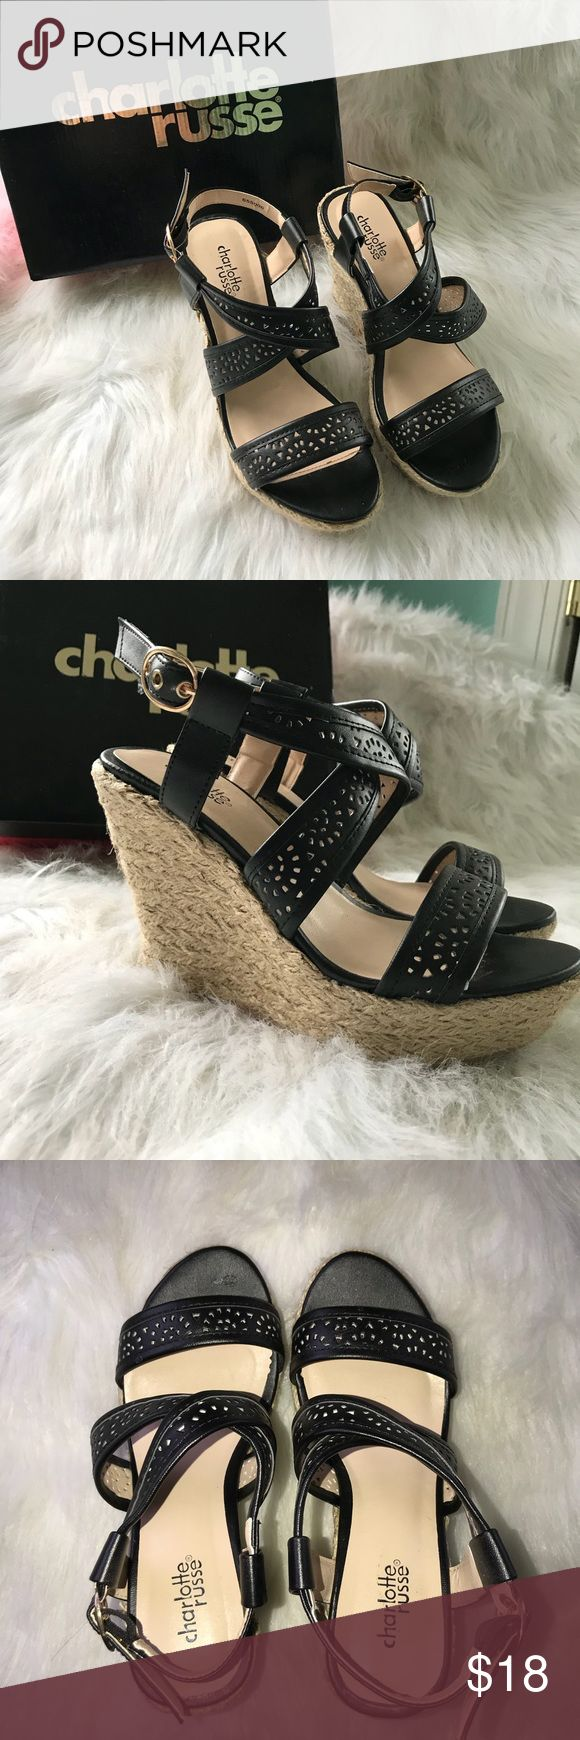 Black strappy wedges Charlotte Russe Black strappy Wedges. Perfect condition. Never worn. Charlotte Russe Shoes Wedges